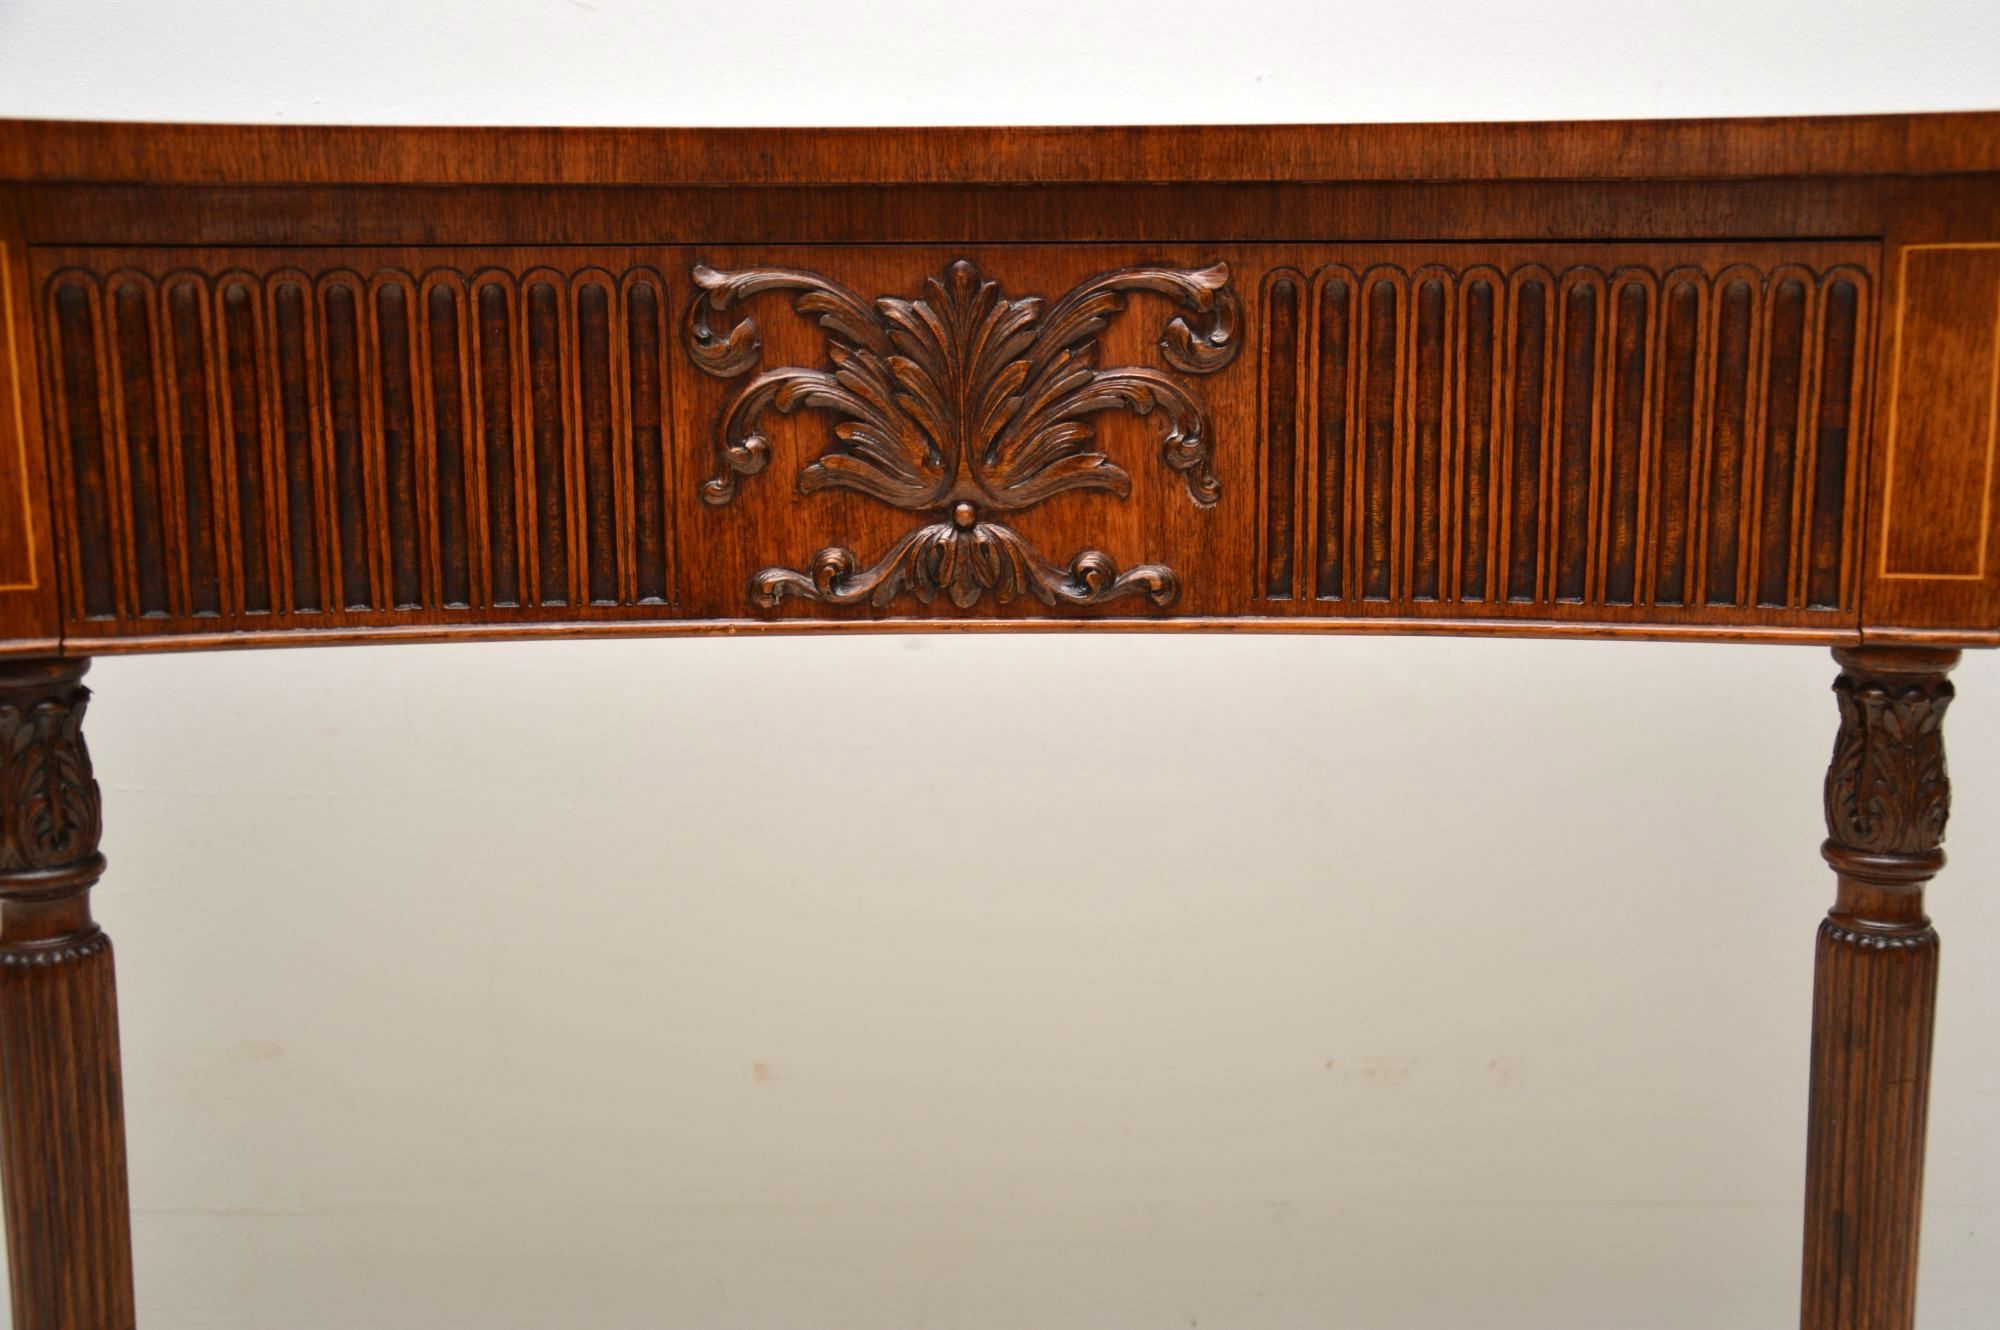 Antique Inlaid Mahogany & Kingwood Server Console Table (1930 To Regarding Orange Inlay Console Tables (View 17 of 20)